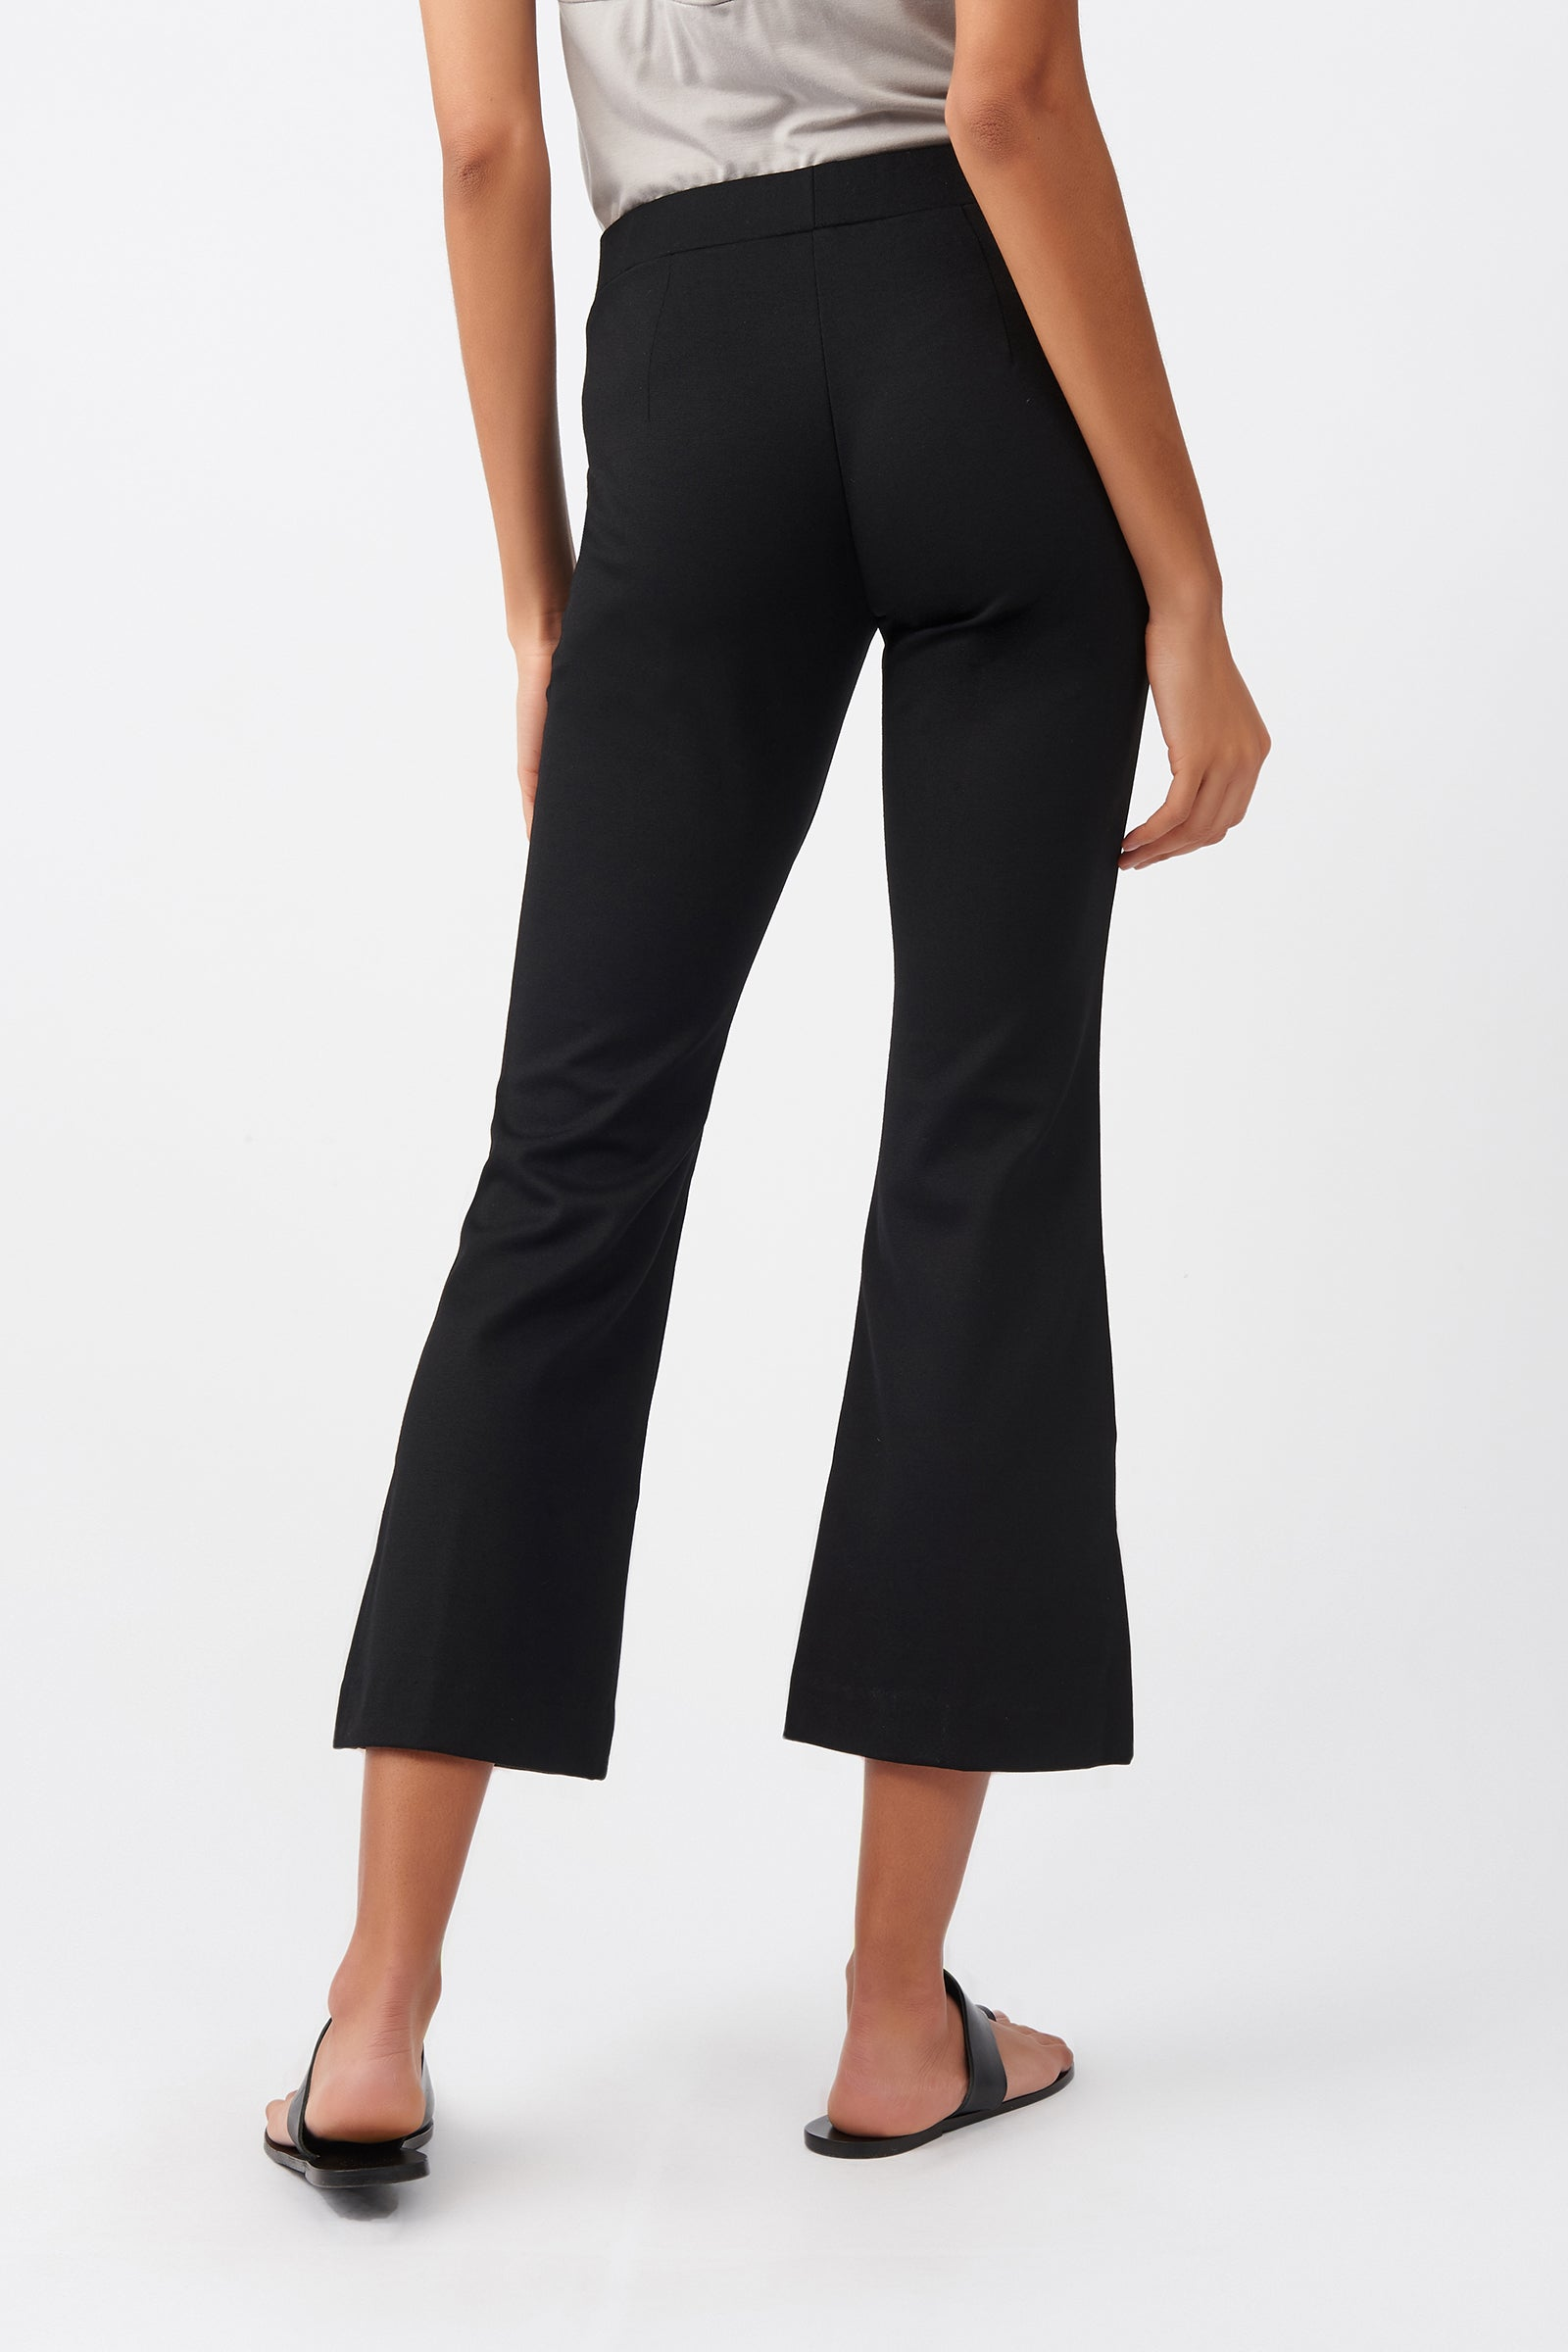 Kal Rieman Pintuck Ponte Crop Flare Pant in Black on Model Back View